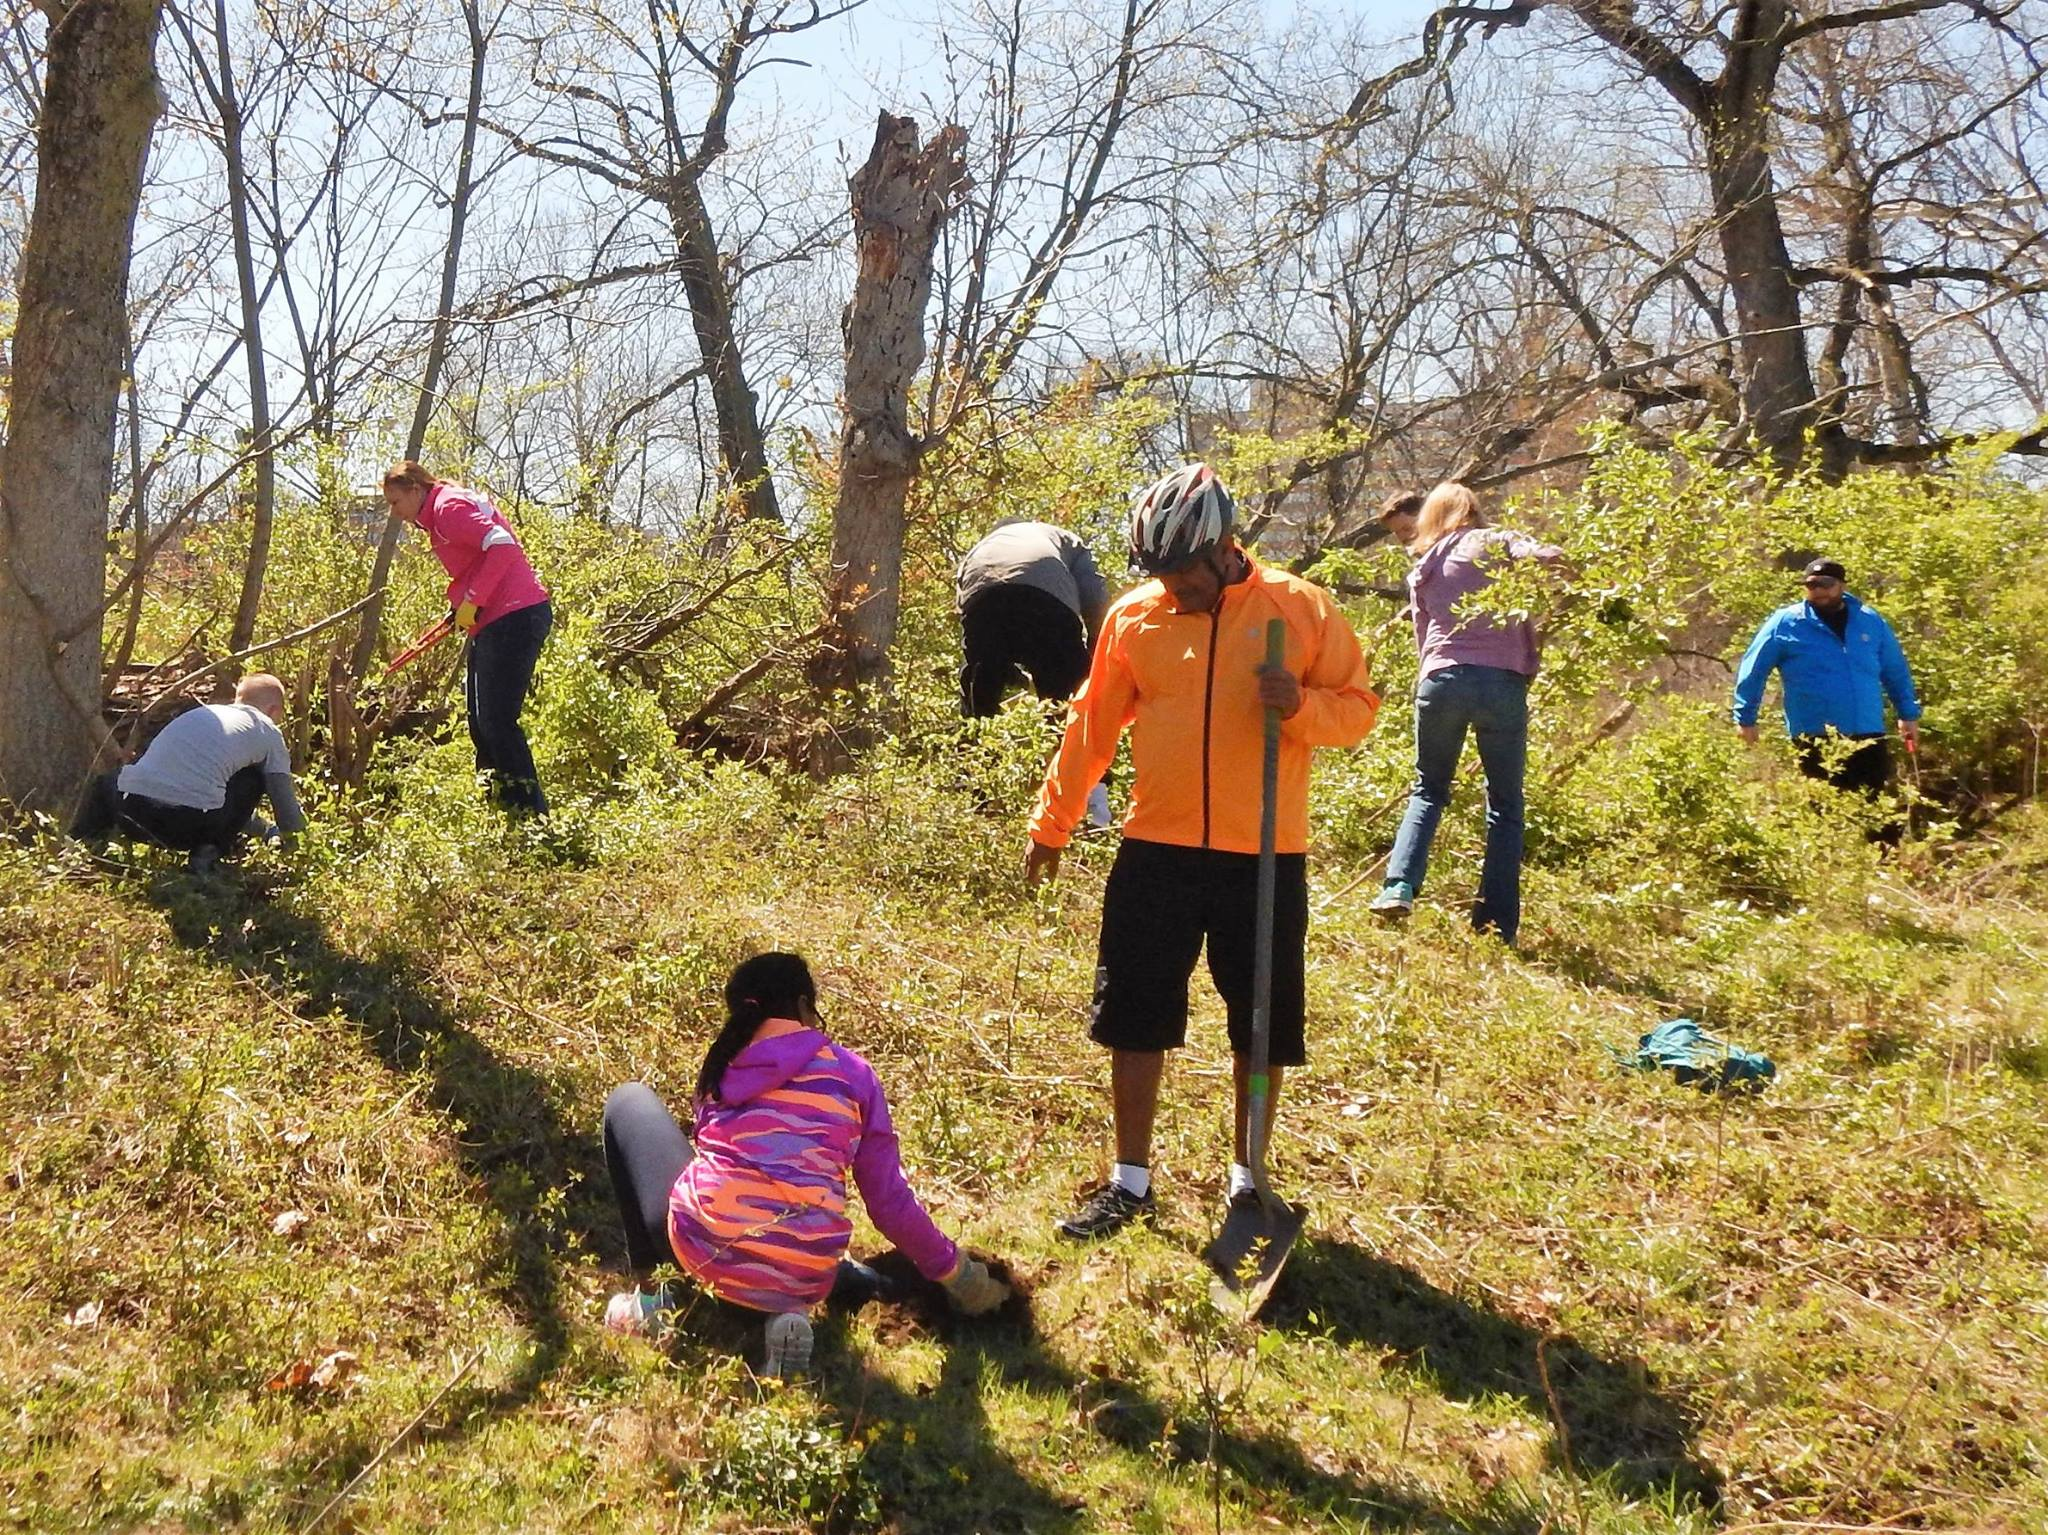 The crew clears invasive plants. Photo credit: Keith 'Lugs' Mayton